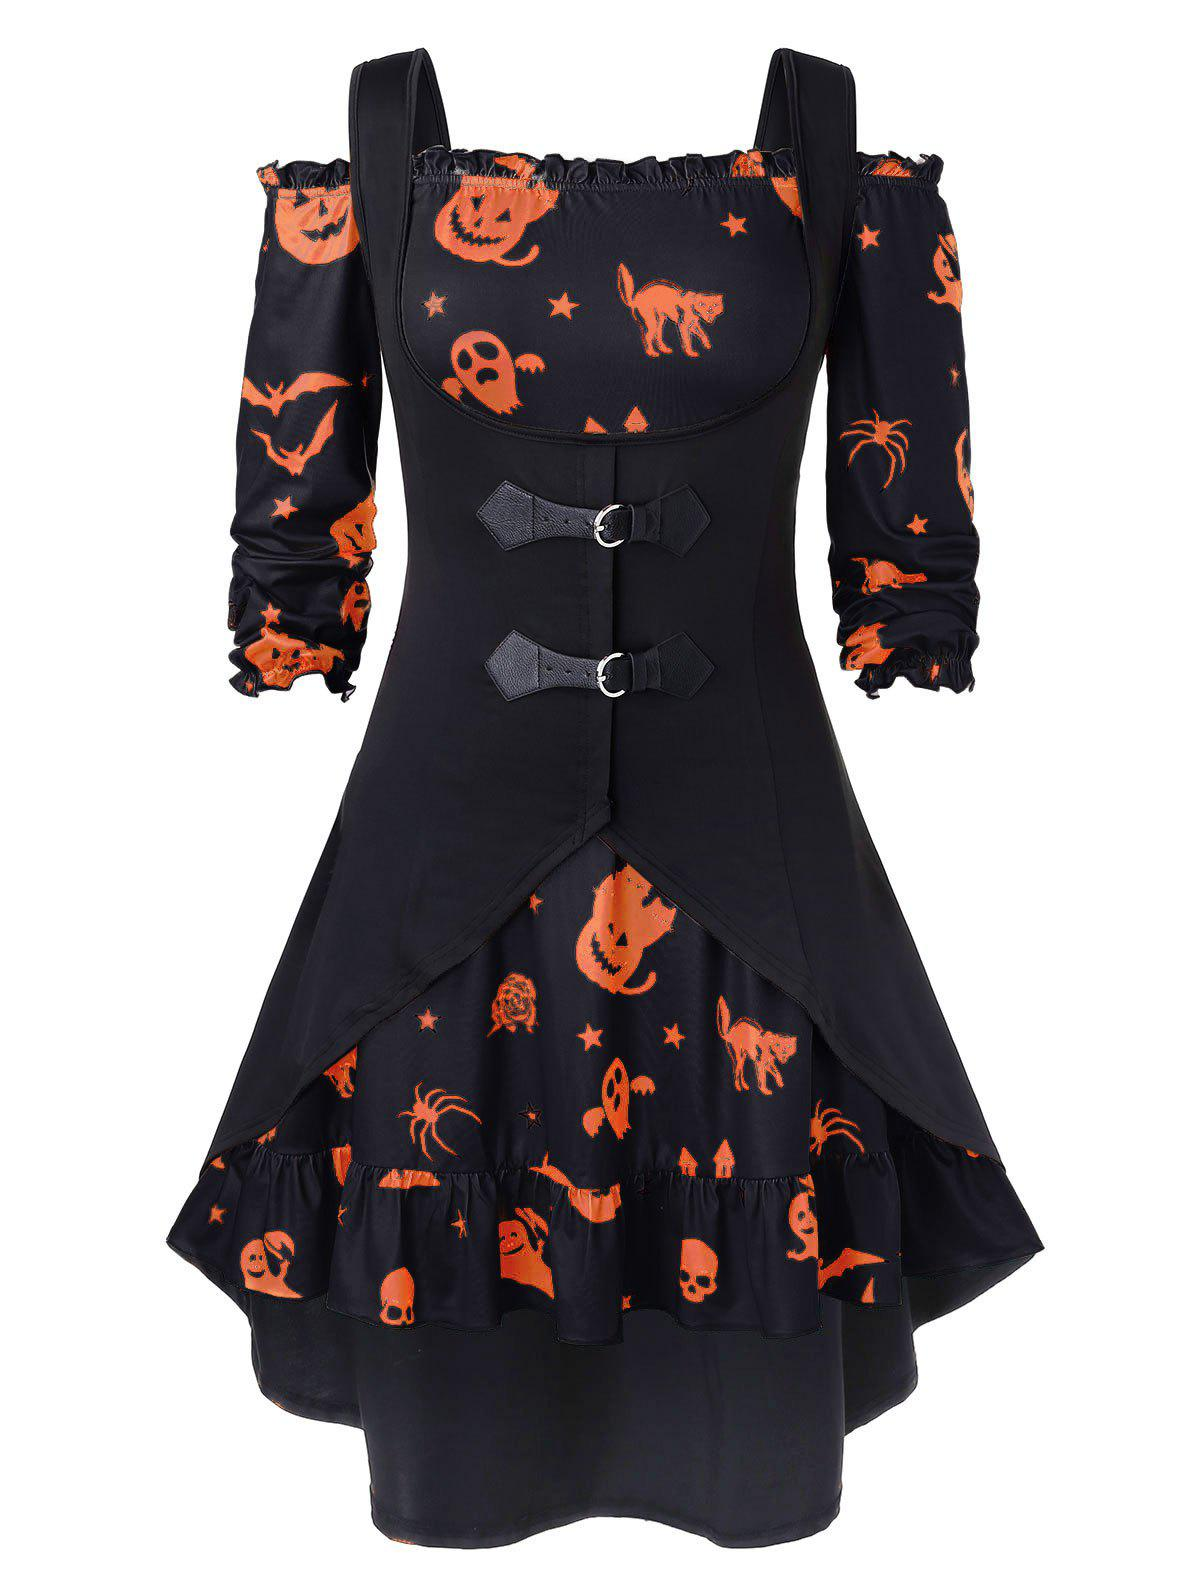 Plus Size Off The Shoulder Pumpkin Print Halloween Vintage Dress with Vest - BLACK 2X